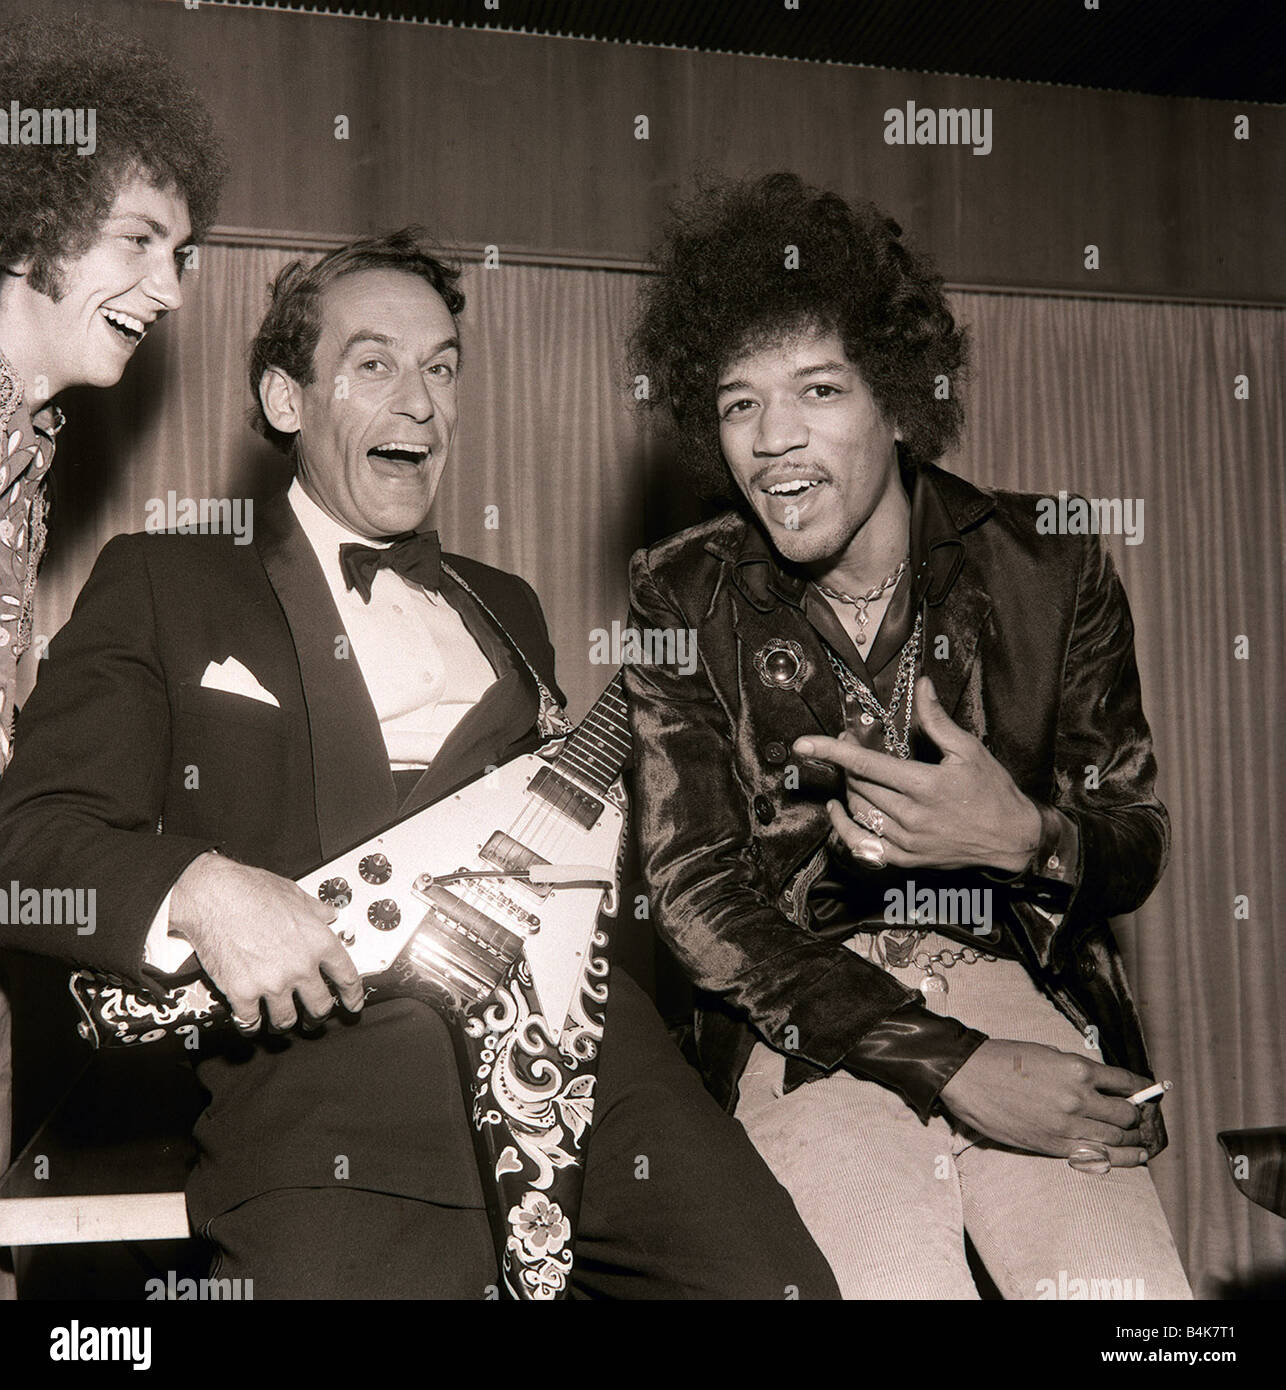 Jeremy Thorpe with Jimi Hendrix after concert by The Jimi Hendrix Experience at Royal Festival Hall guitar tuxcedo Stock Photo